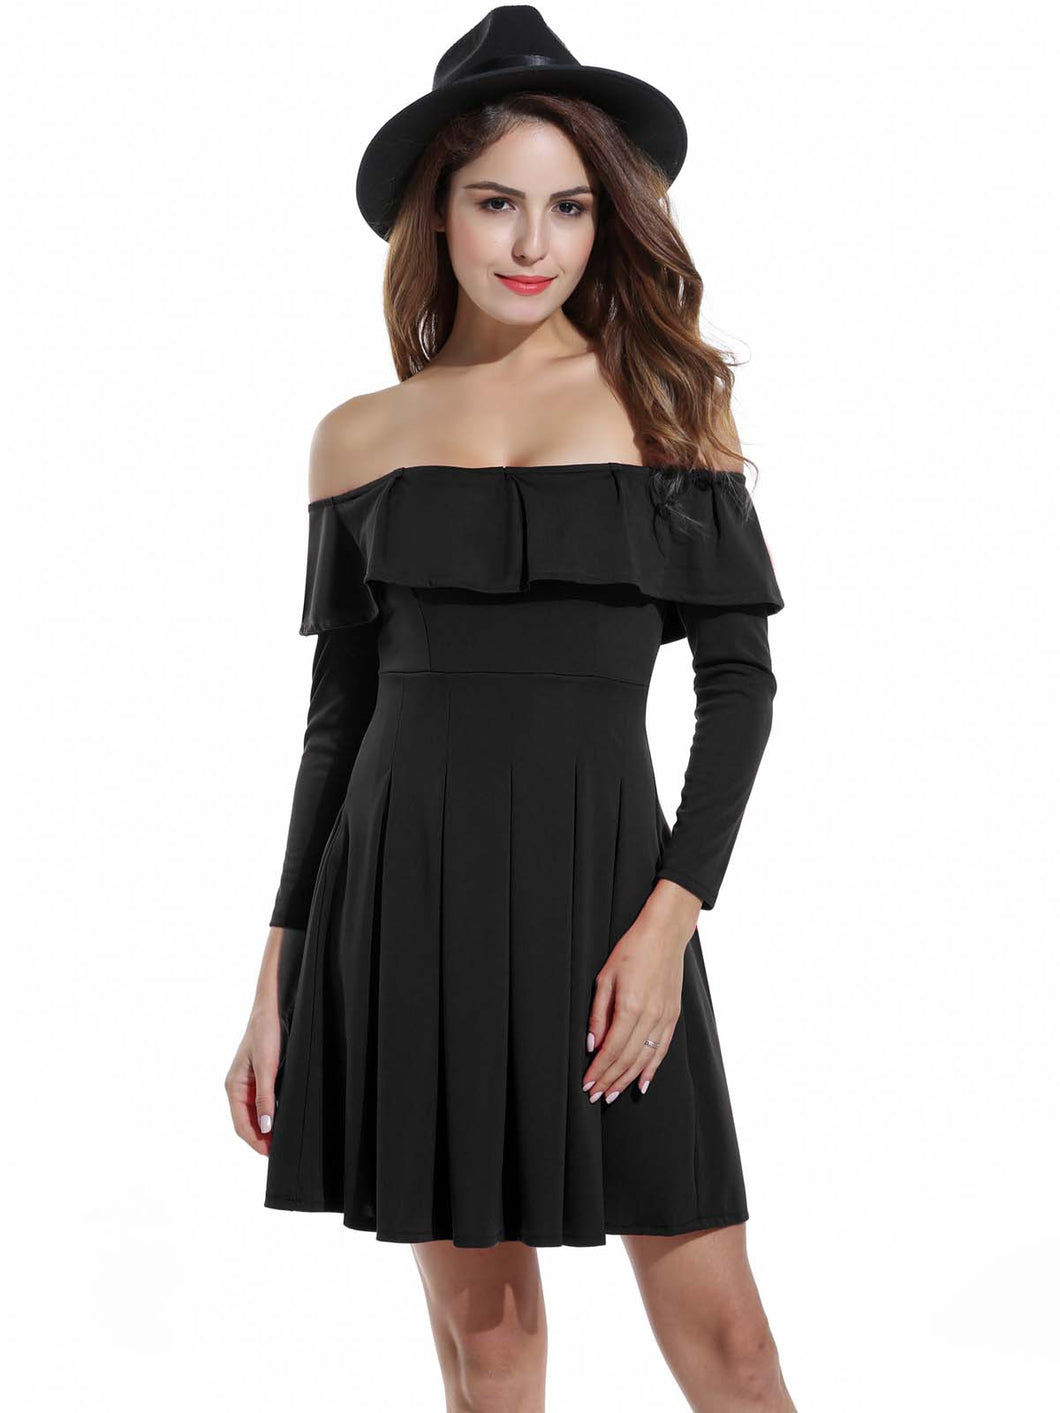 Zeagoo Women Off Shoulder Ruffles Long Sleeve Cocktail Party Pleated Dress Black